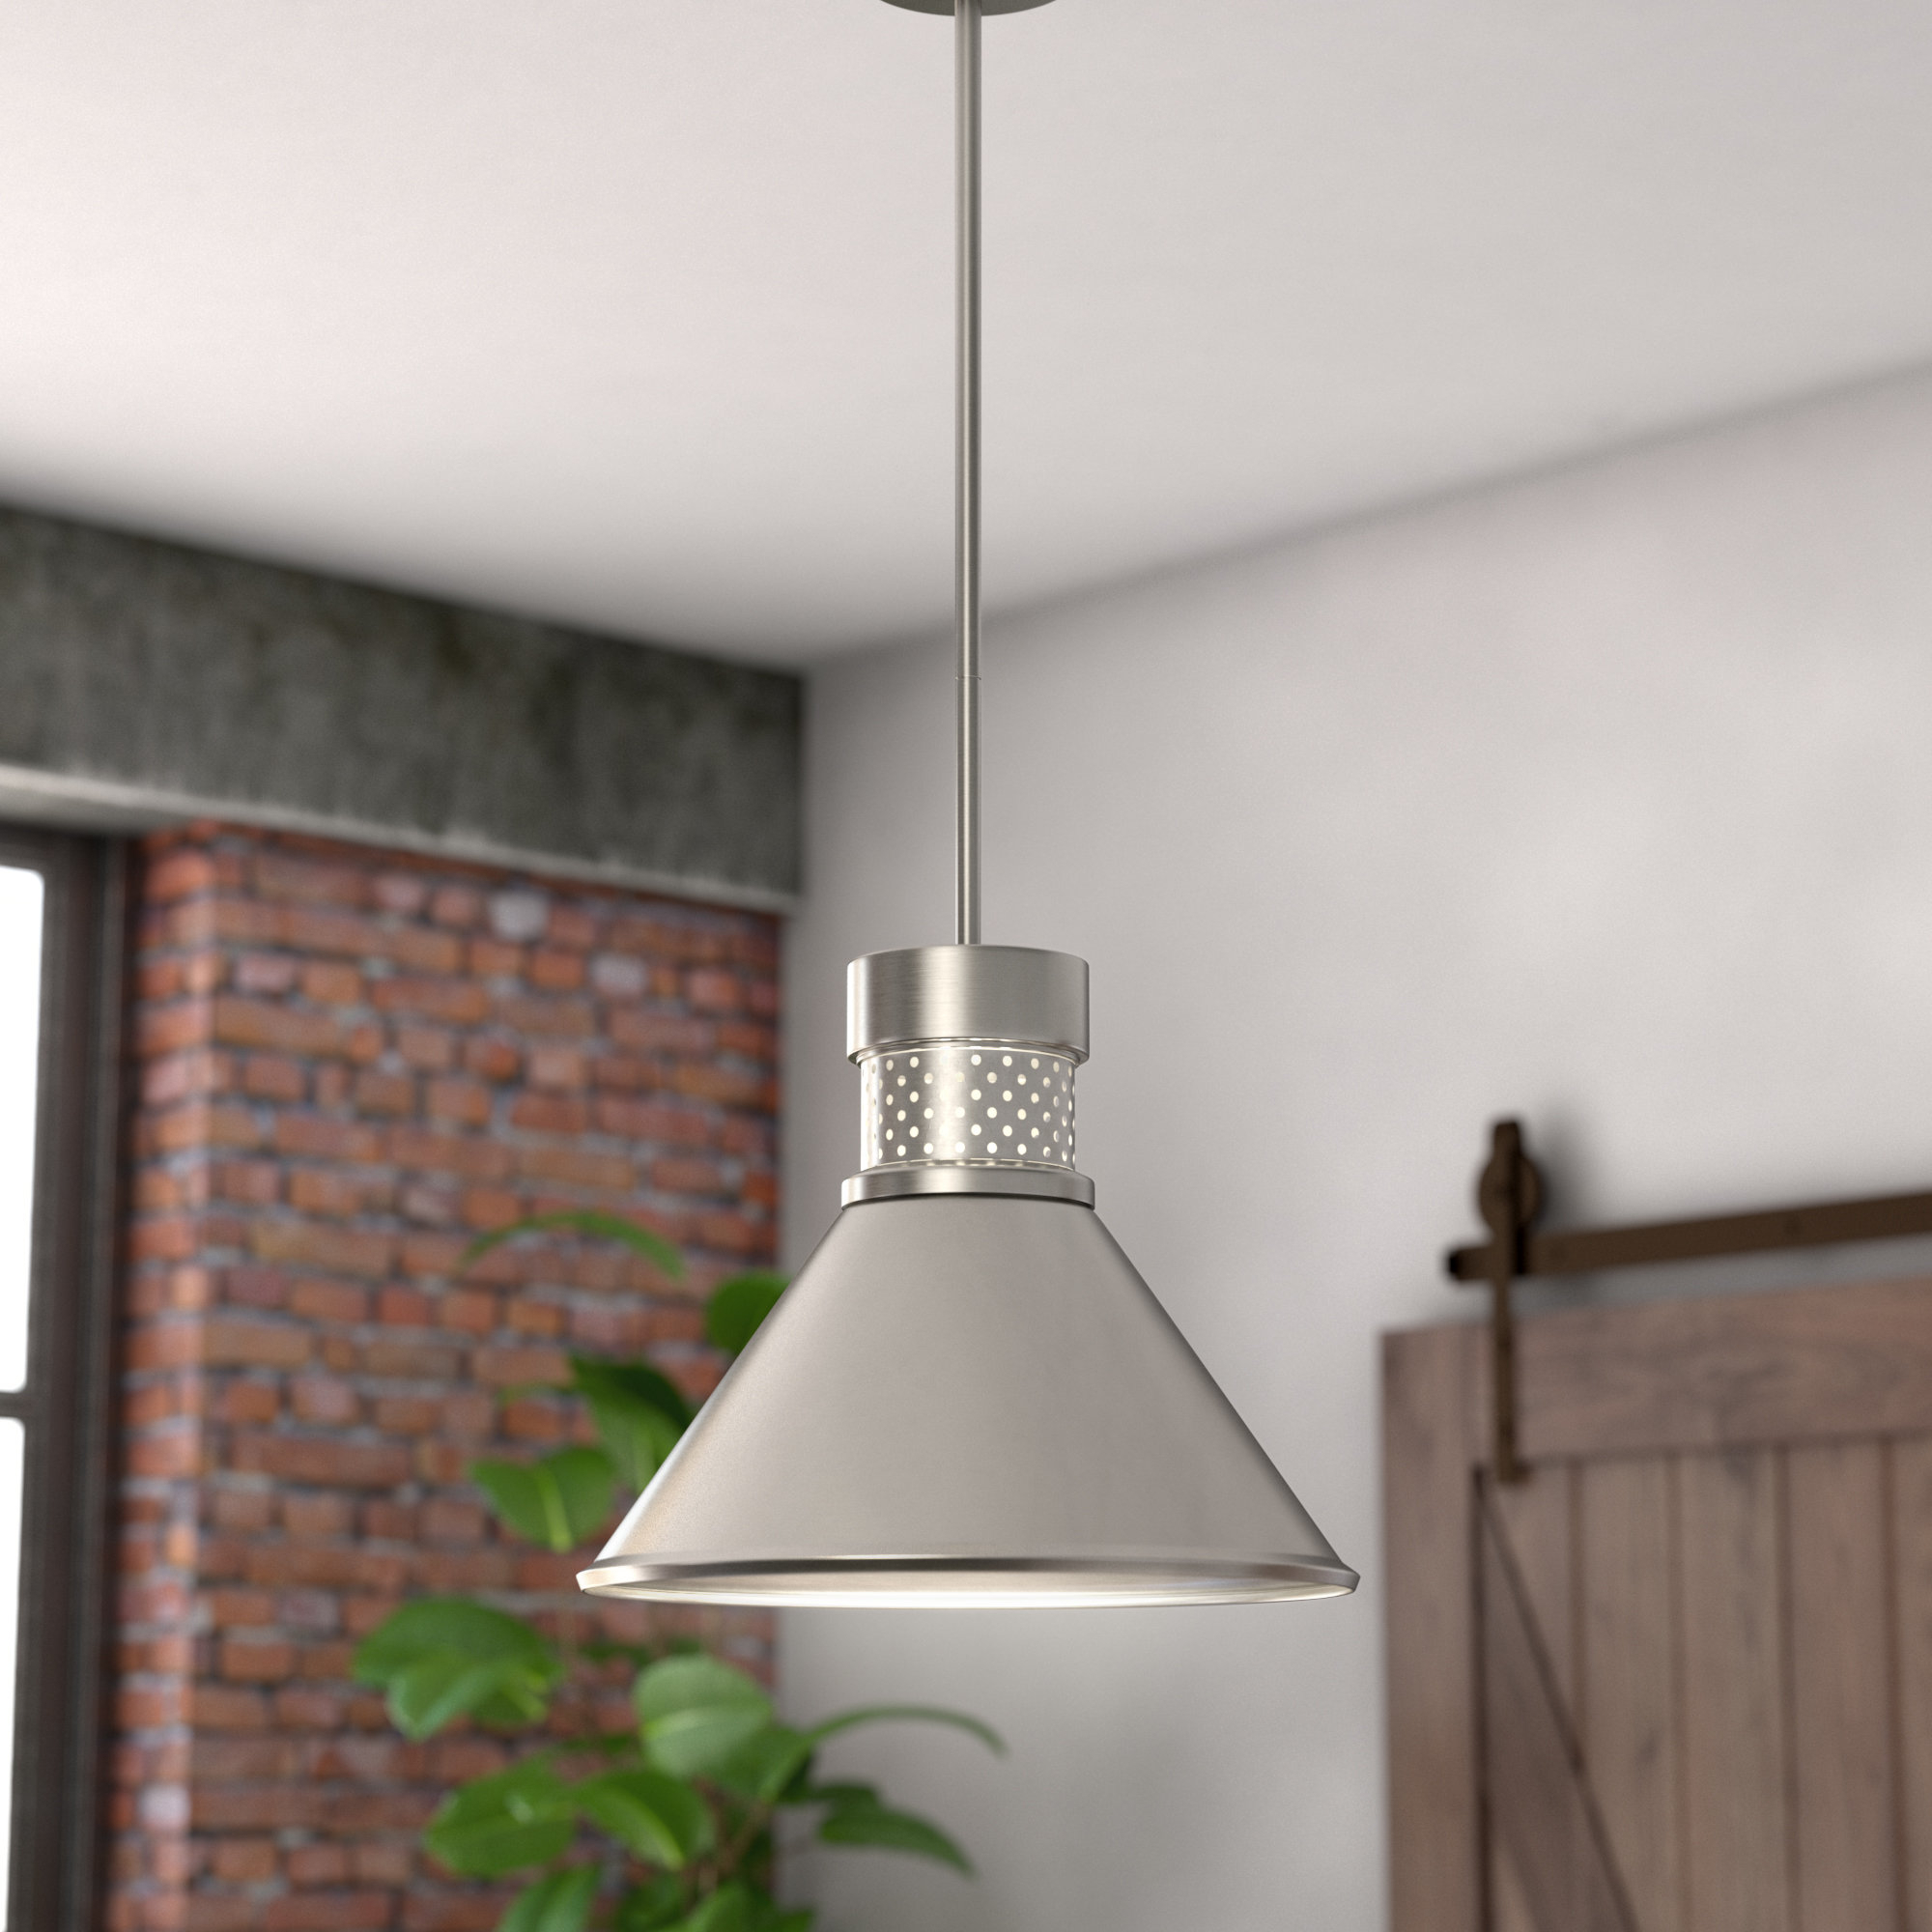 Wayfair Regarding Widely Used Guro 1 Light Cone Pendants (View 24 of 25)